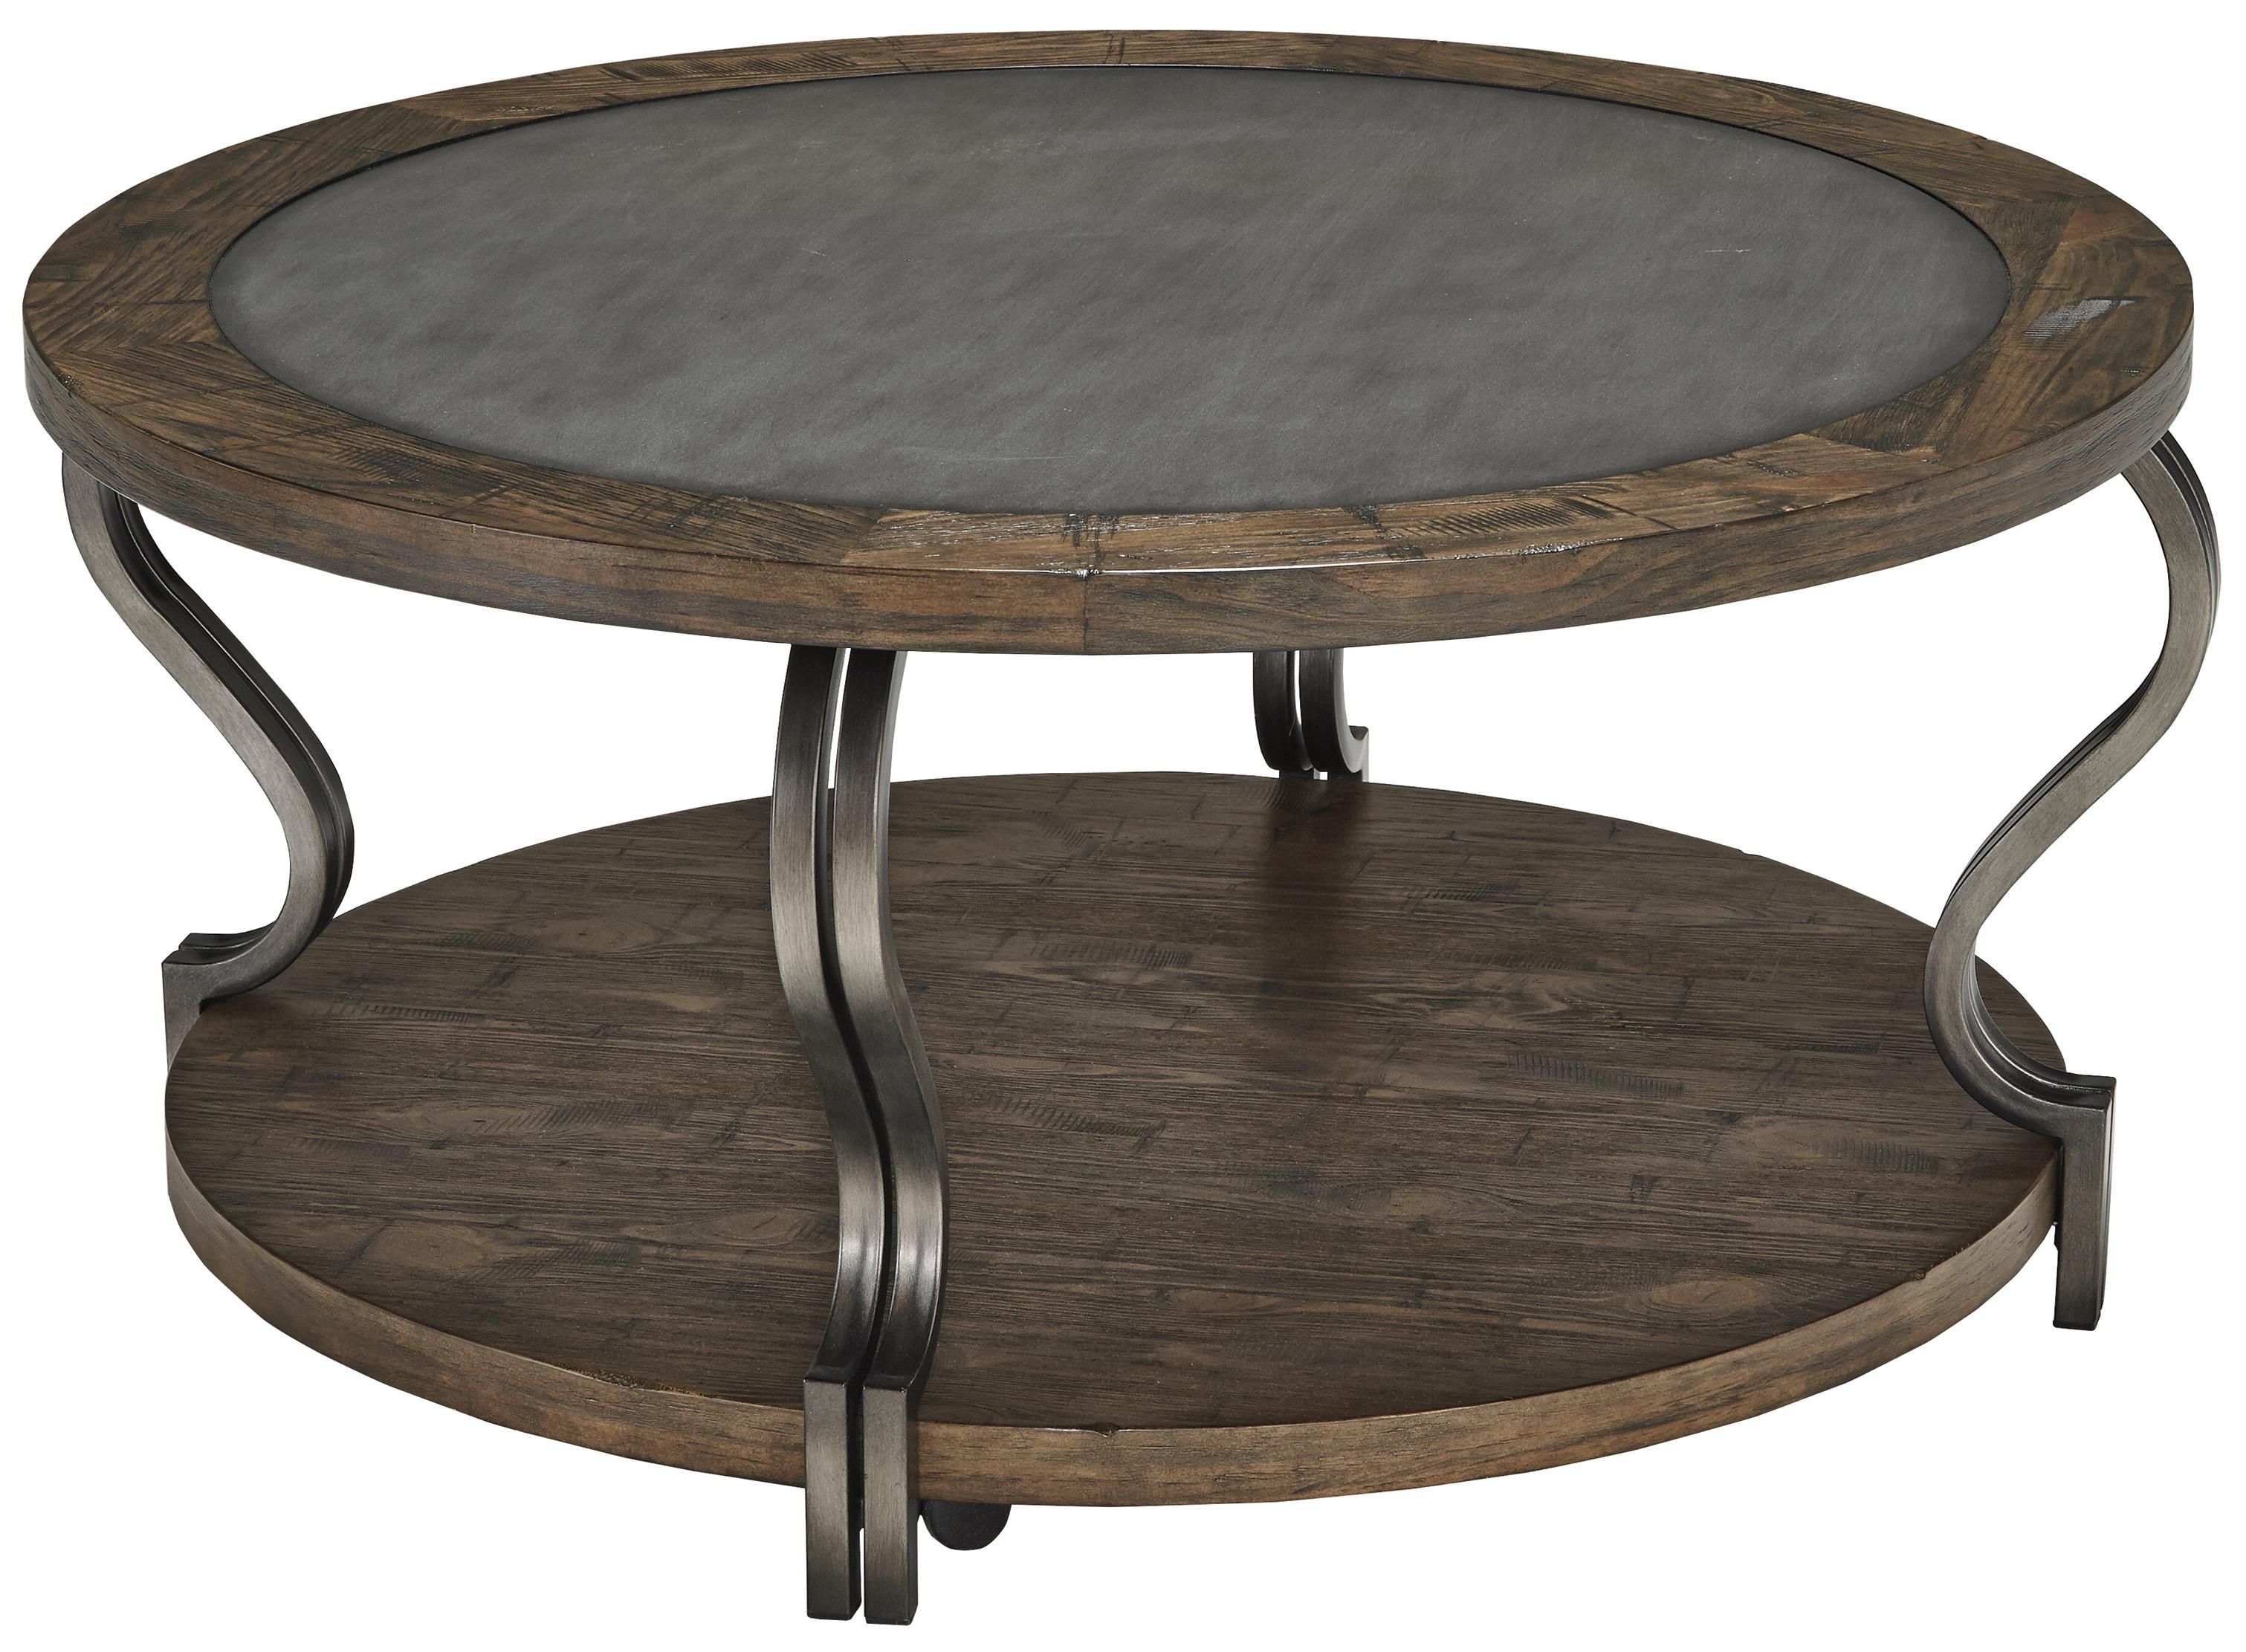 Signature Design by Ashley Volanta Round Cocktail Table - Item Number: T739-8